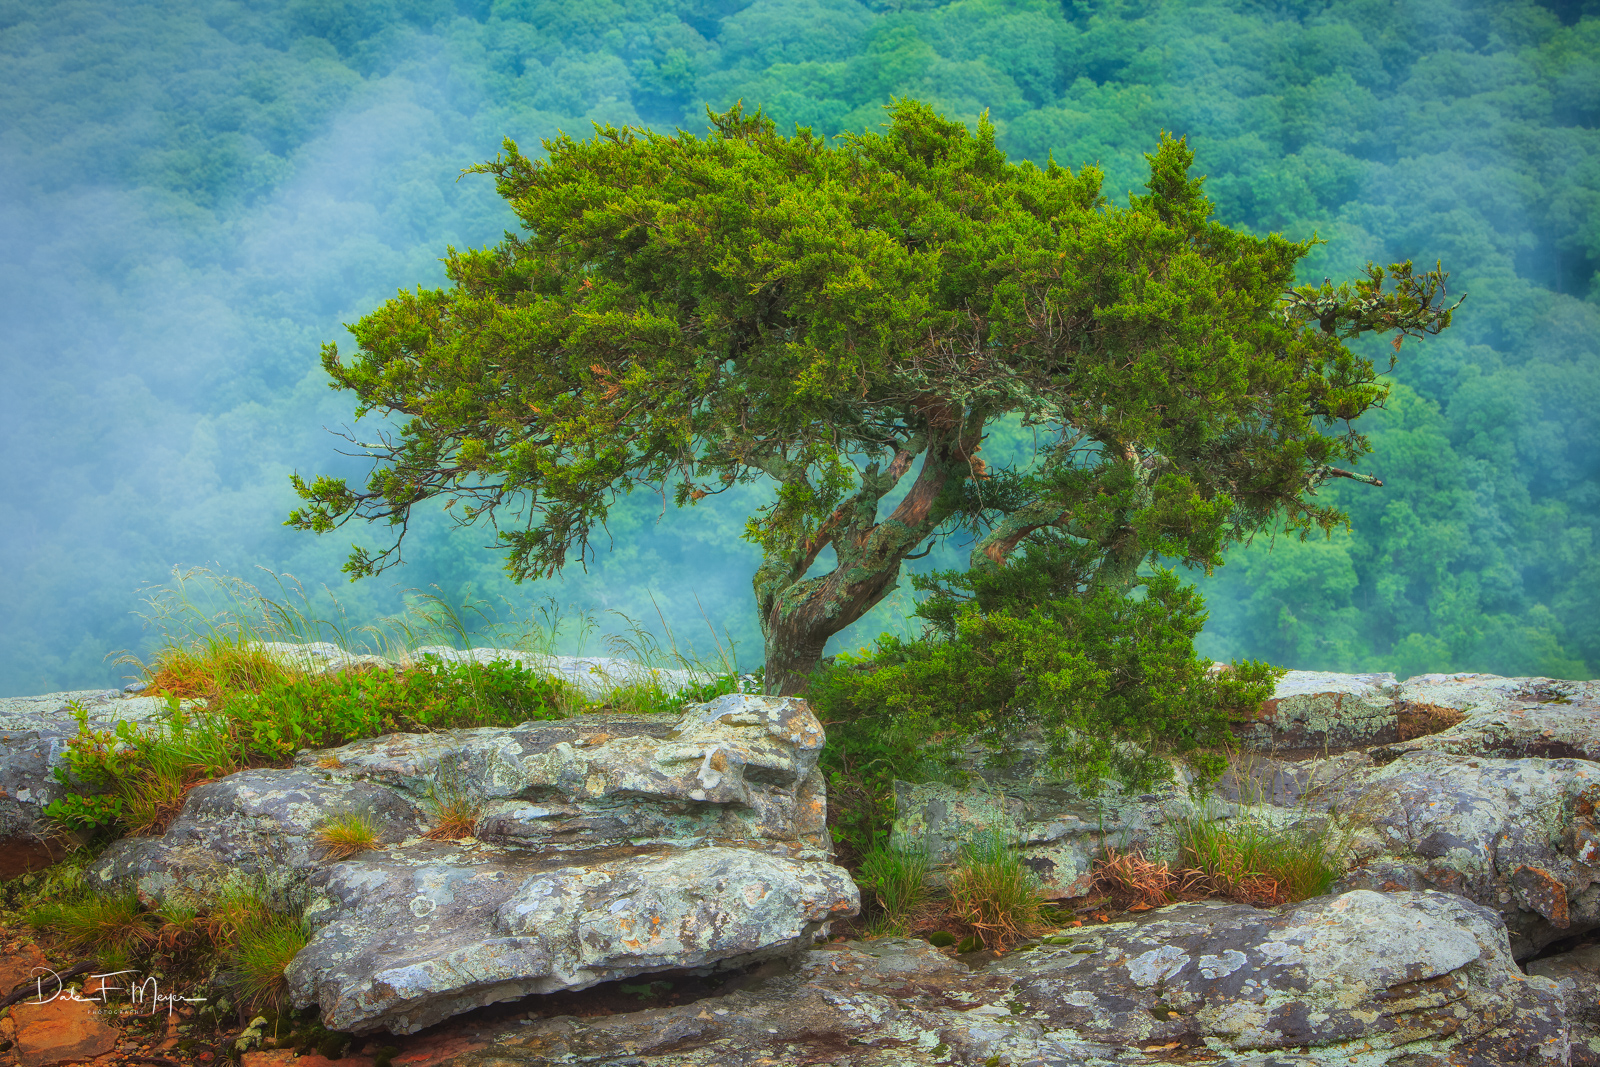 Bonzi Tree,Mt mgazine,Overlook,Rock Outcrop,woodlands and trees gallerie, photo